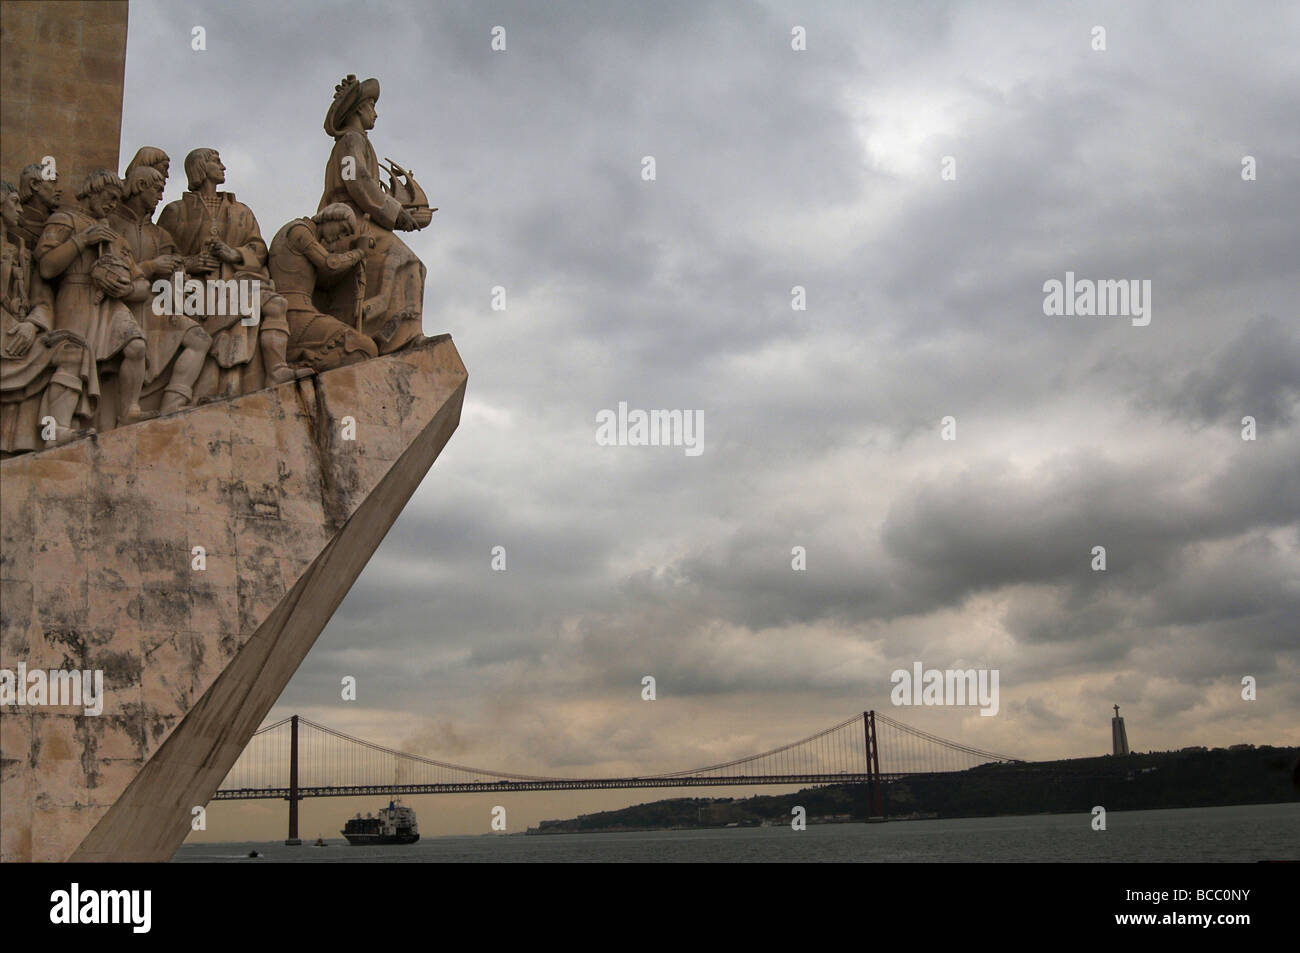 Statue commemorating new world explorers in Lisbon Portugal - Stock Image